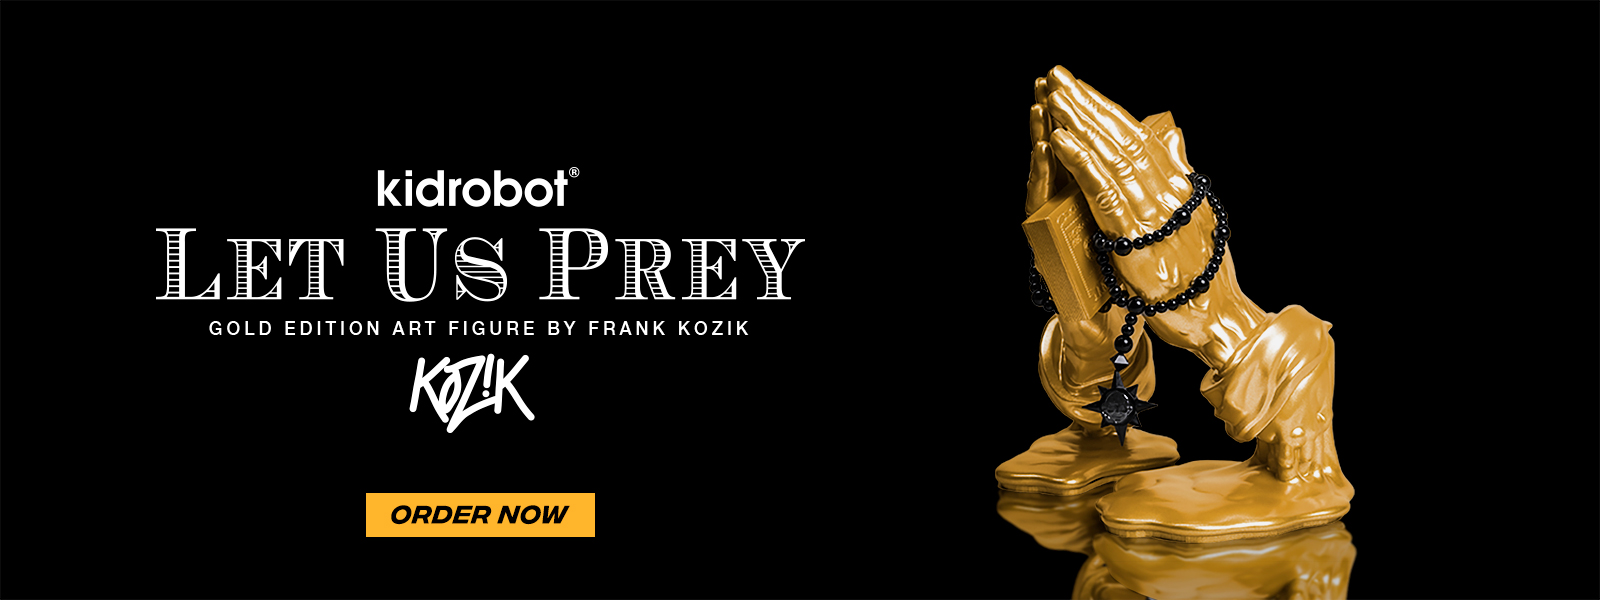 """Head over to the Kidrobot Virtual Con for your chance to order the shiny gold edition of Frank Kozik's """"Let Us Prey"""" art vinyl figure - G(u)ilt Edition dropping right now!"""